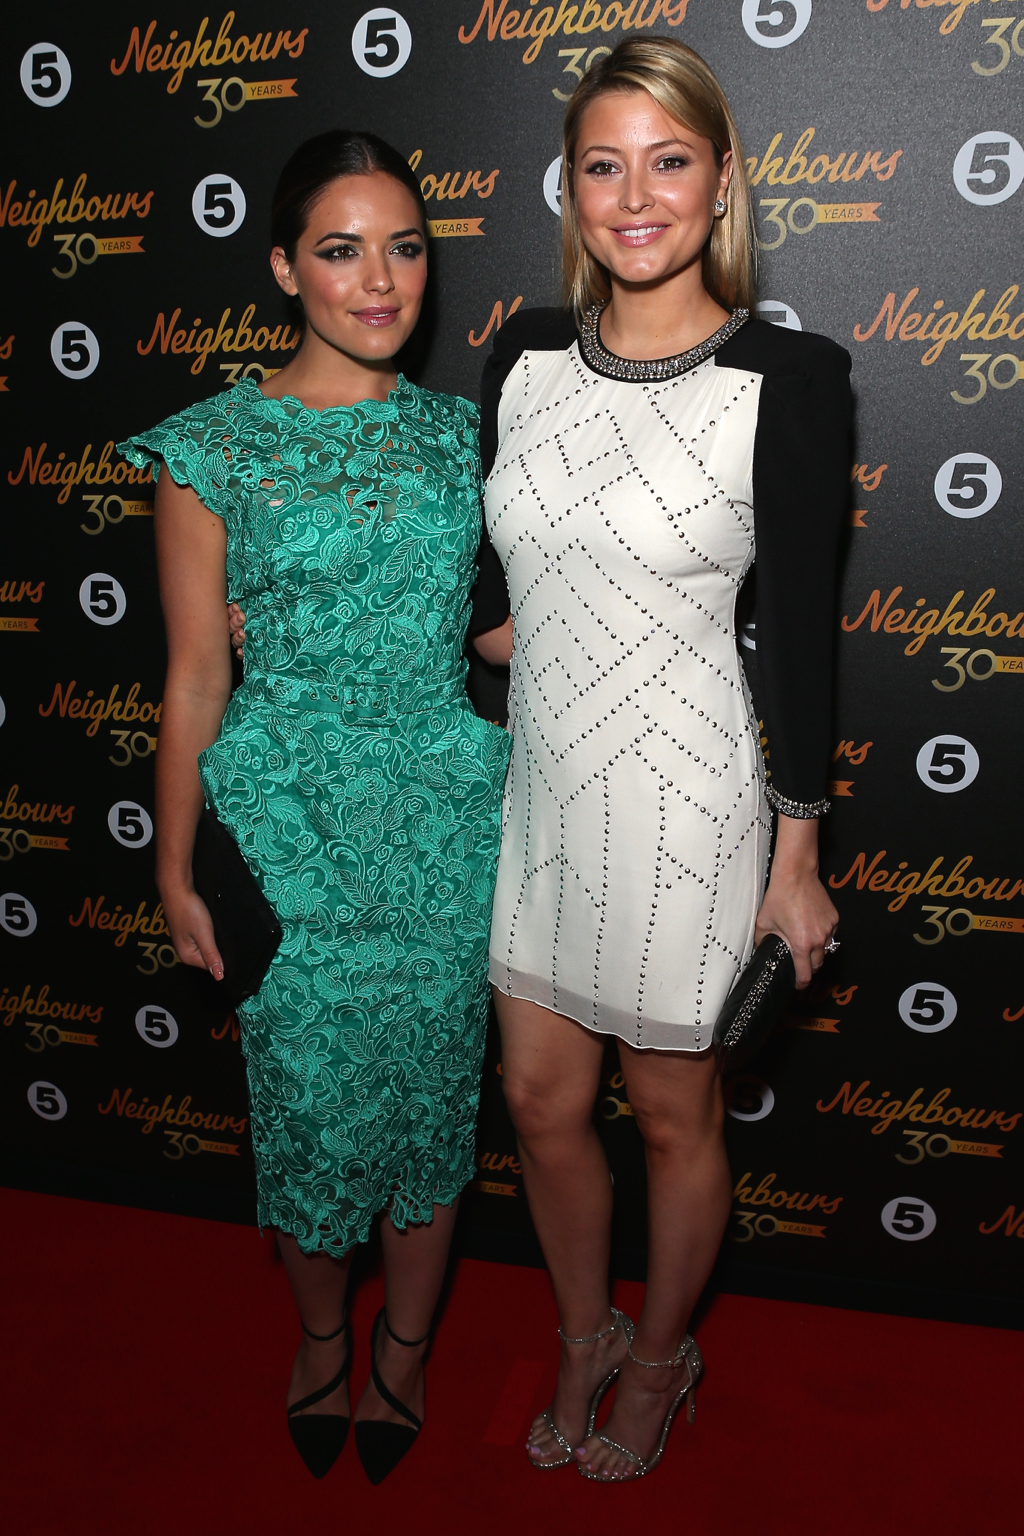 'Neighbours' 30th Anniversary event at Caf�© De Paris in Leicester Square - Arrivals  Featuring: Olympia Valance, Holly Valance Where: London, United Kingdom When: 17 Mar 2015 Credit: Phil Lewis/WENN.com